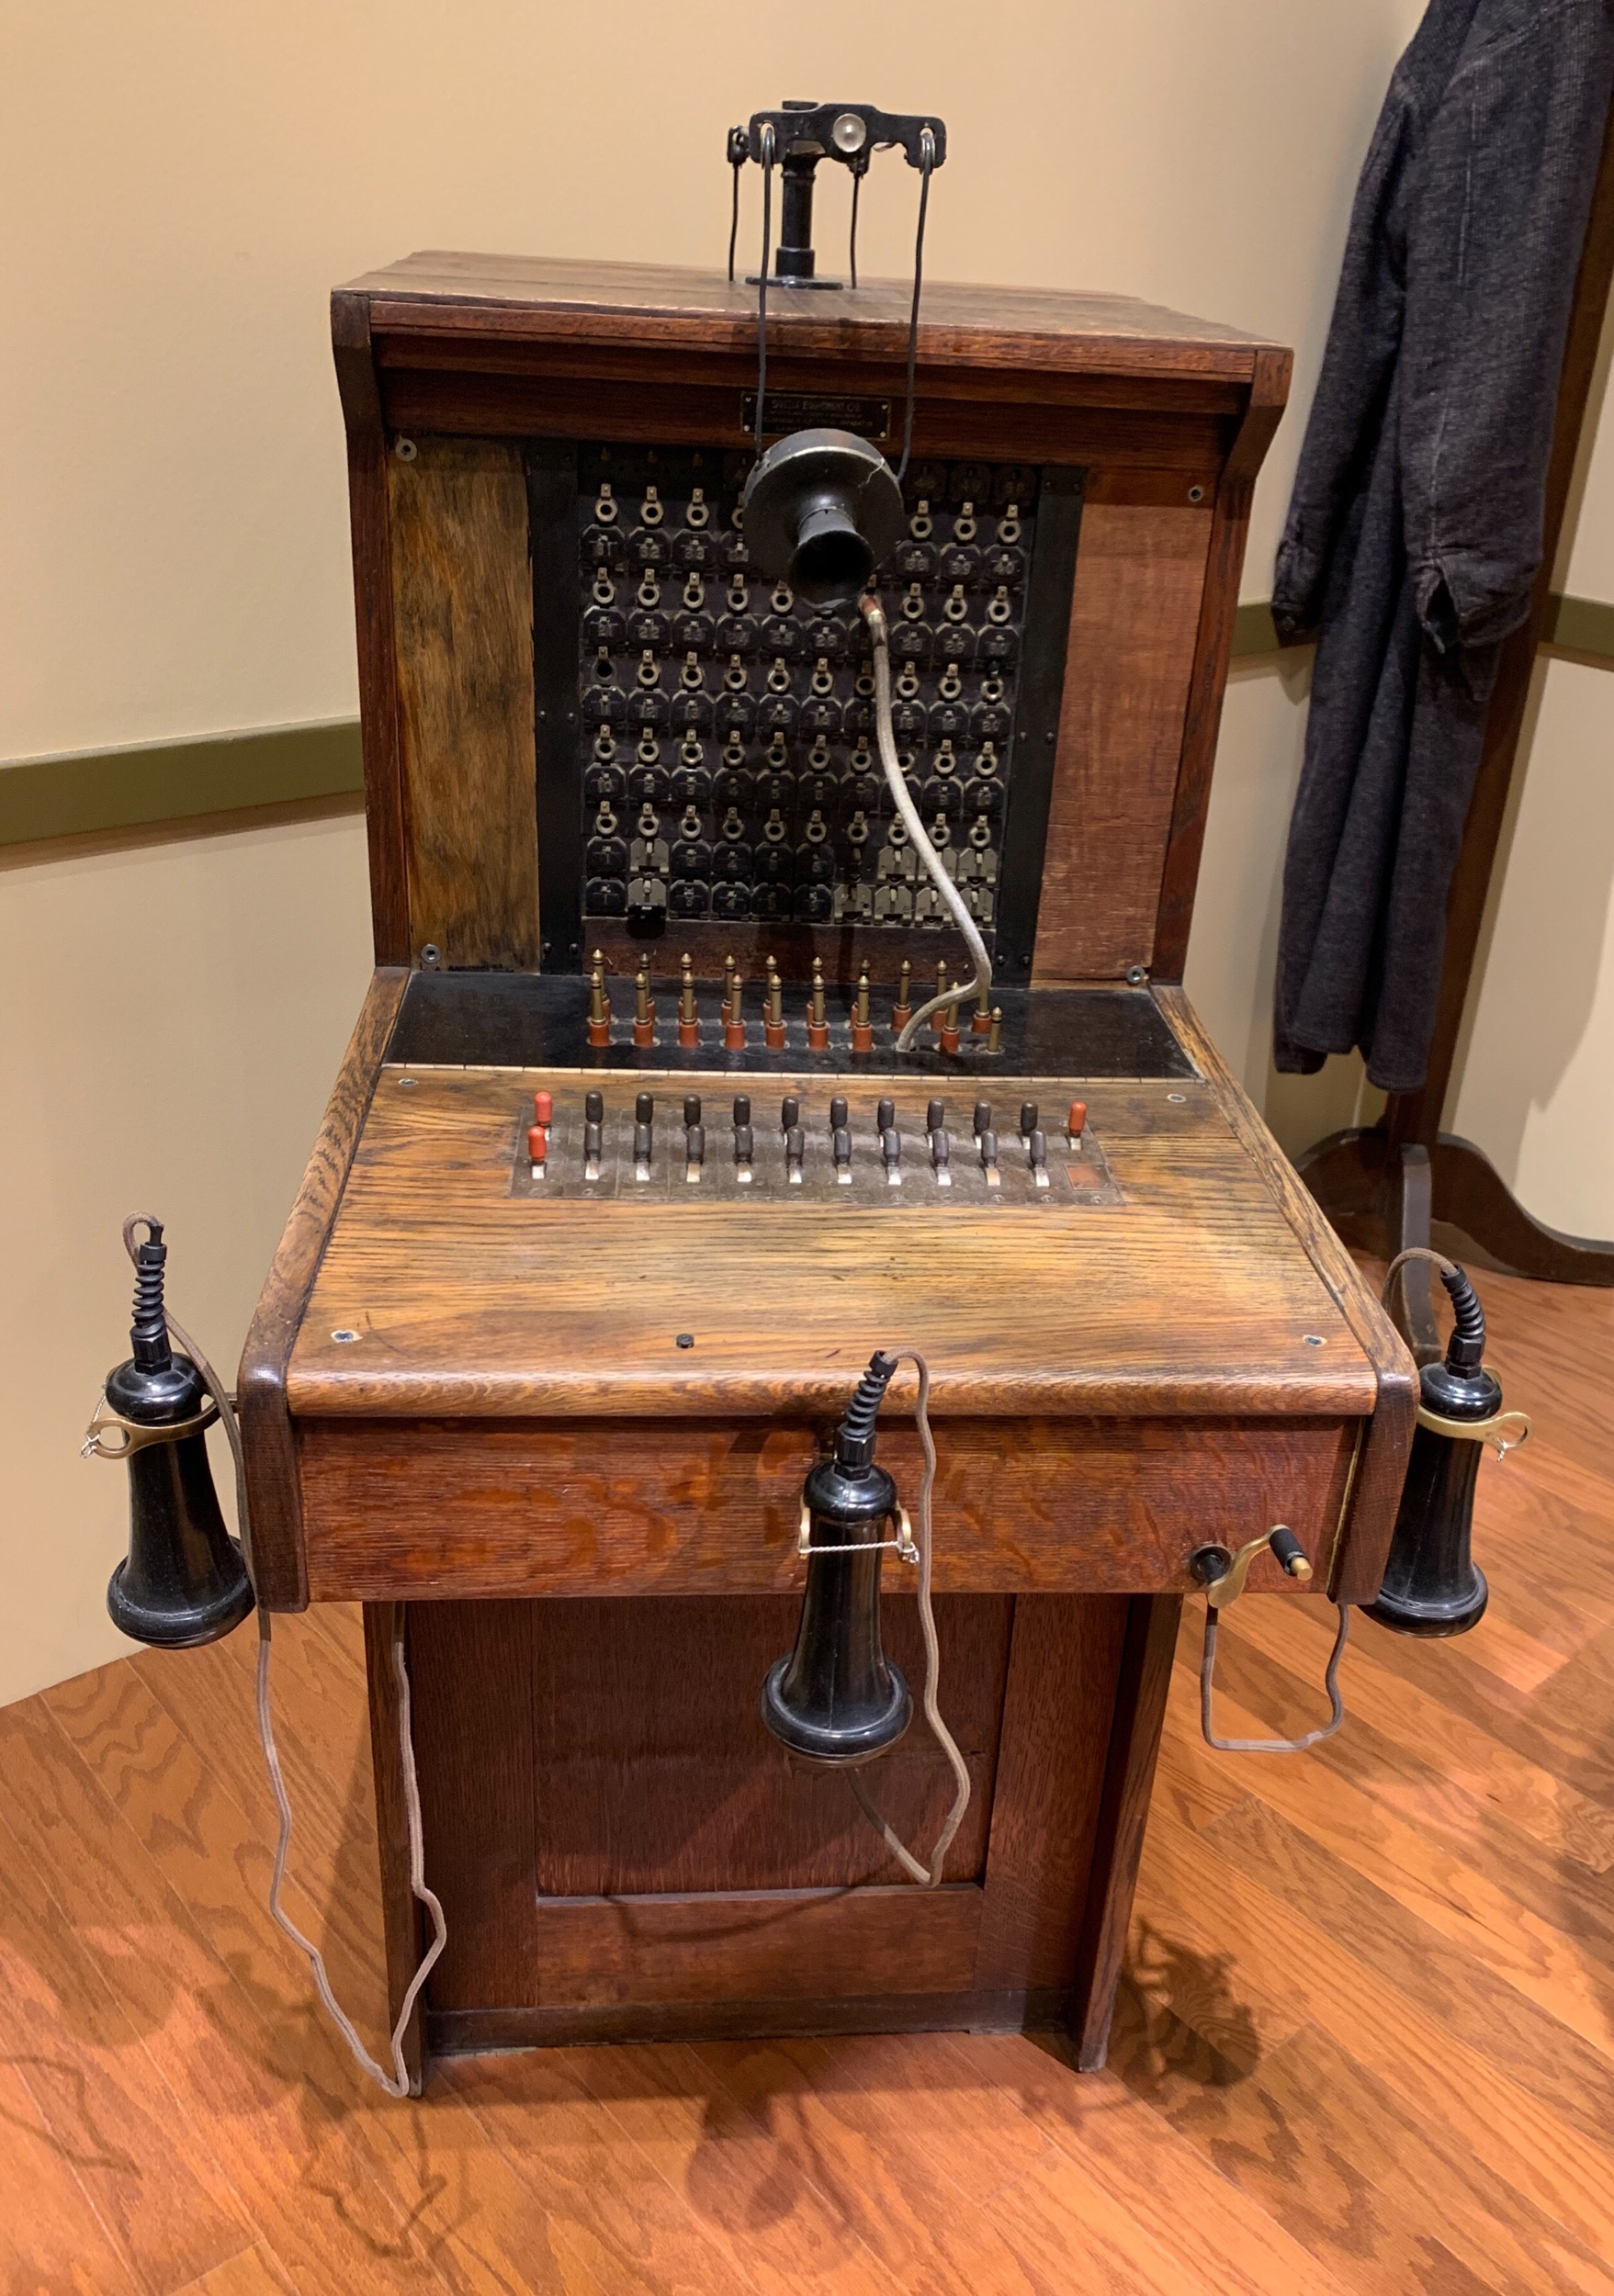 This is from back in the day when a telephone operator had three ears.